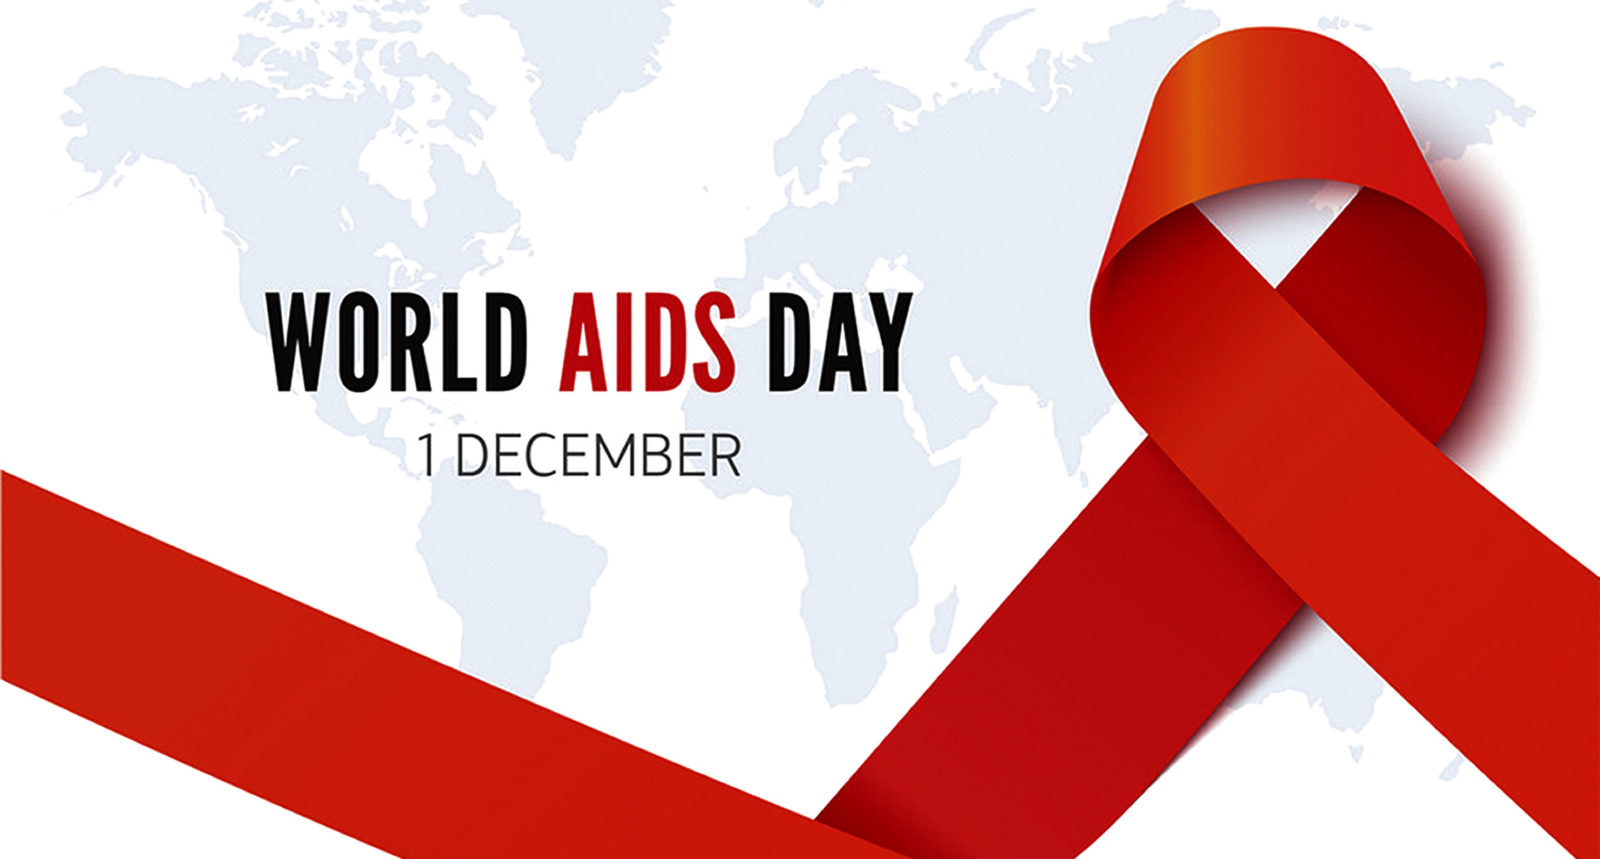 A message from Dr Christoph Benn on World AIDS Day 2020